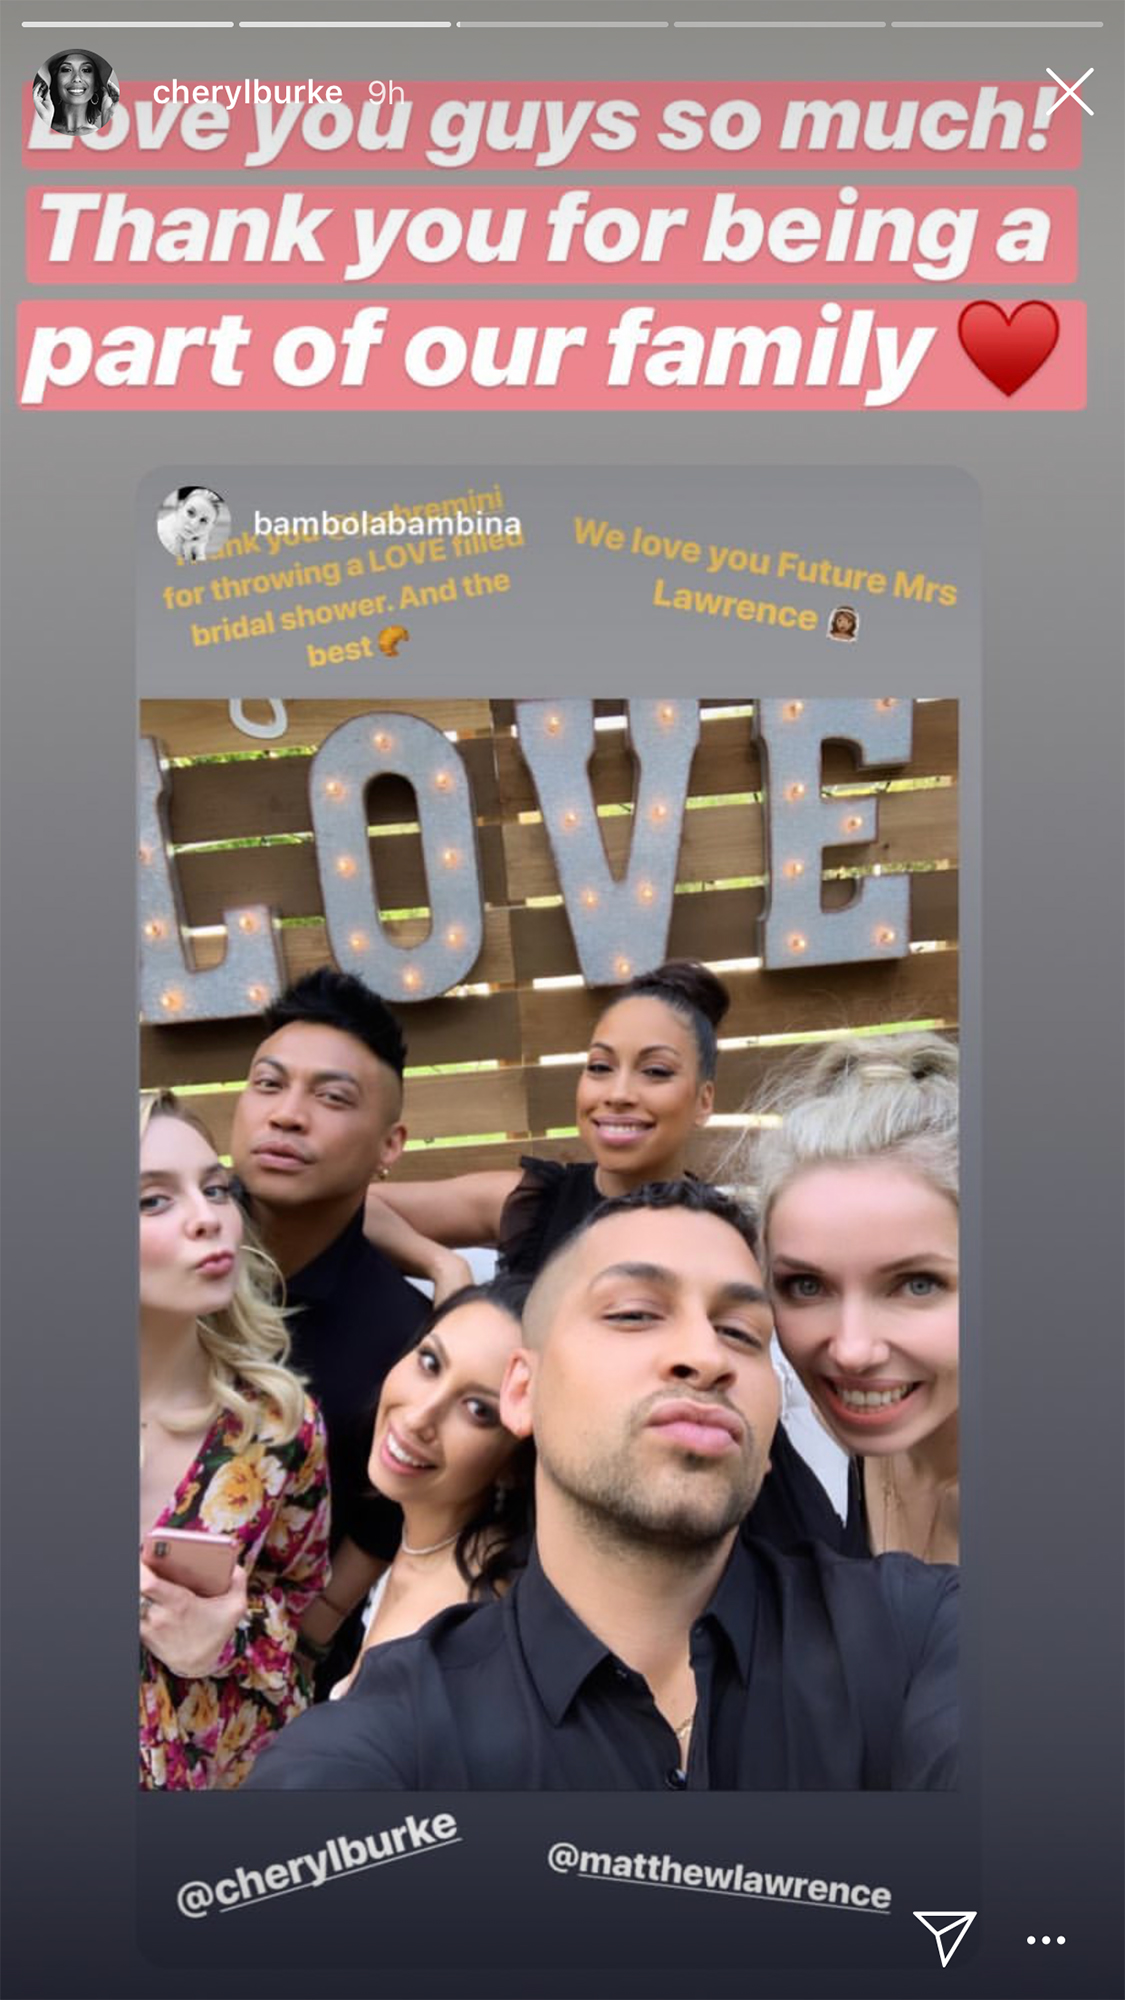 Cheryl Burke Celebrates Bridal Shower at 'Matron of Honor' Leah Remini's House Ahead of Wedding to Fiance Matthew Lawrence - Burke was surrounded by the love of friends and family.